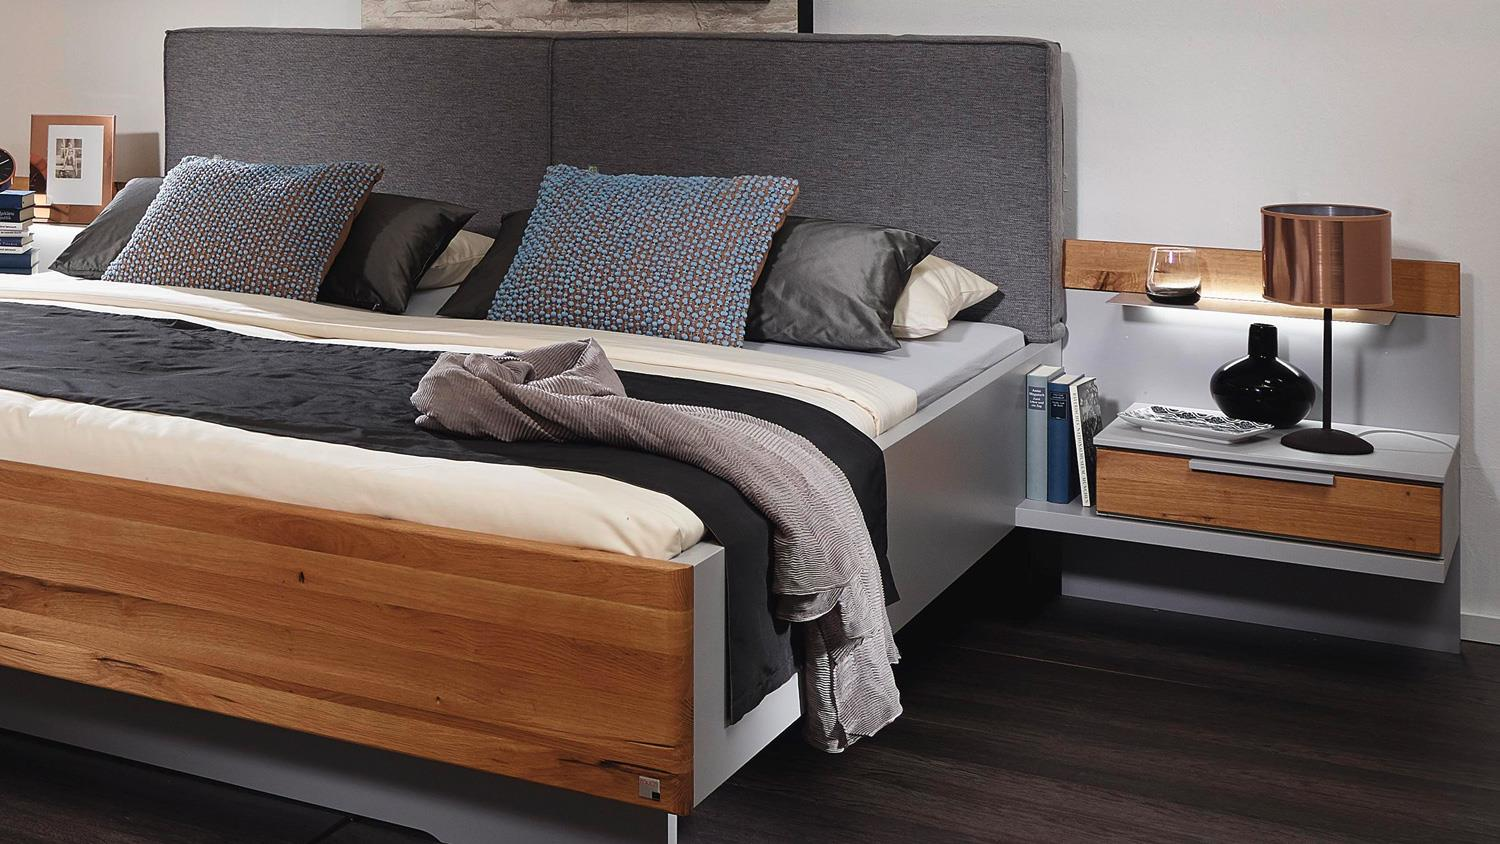 schlafzimmer lavant schrank bett nachtkommode in grau asteiche massiv. Black Bedroom Furniture Sets. Home Design Ideas